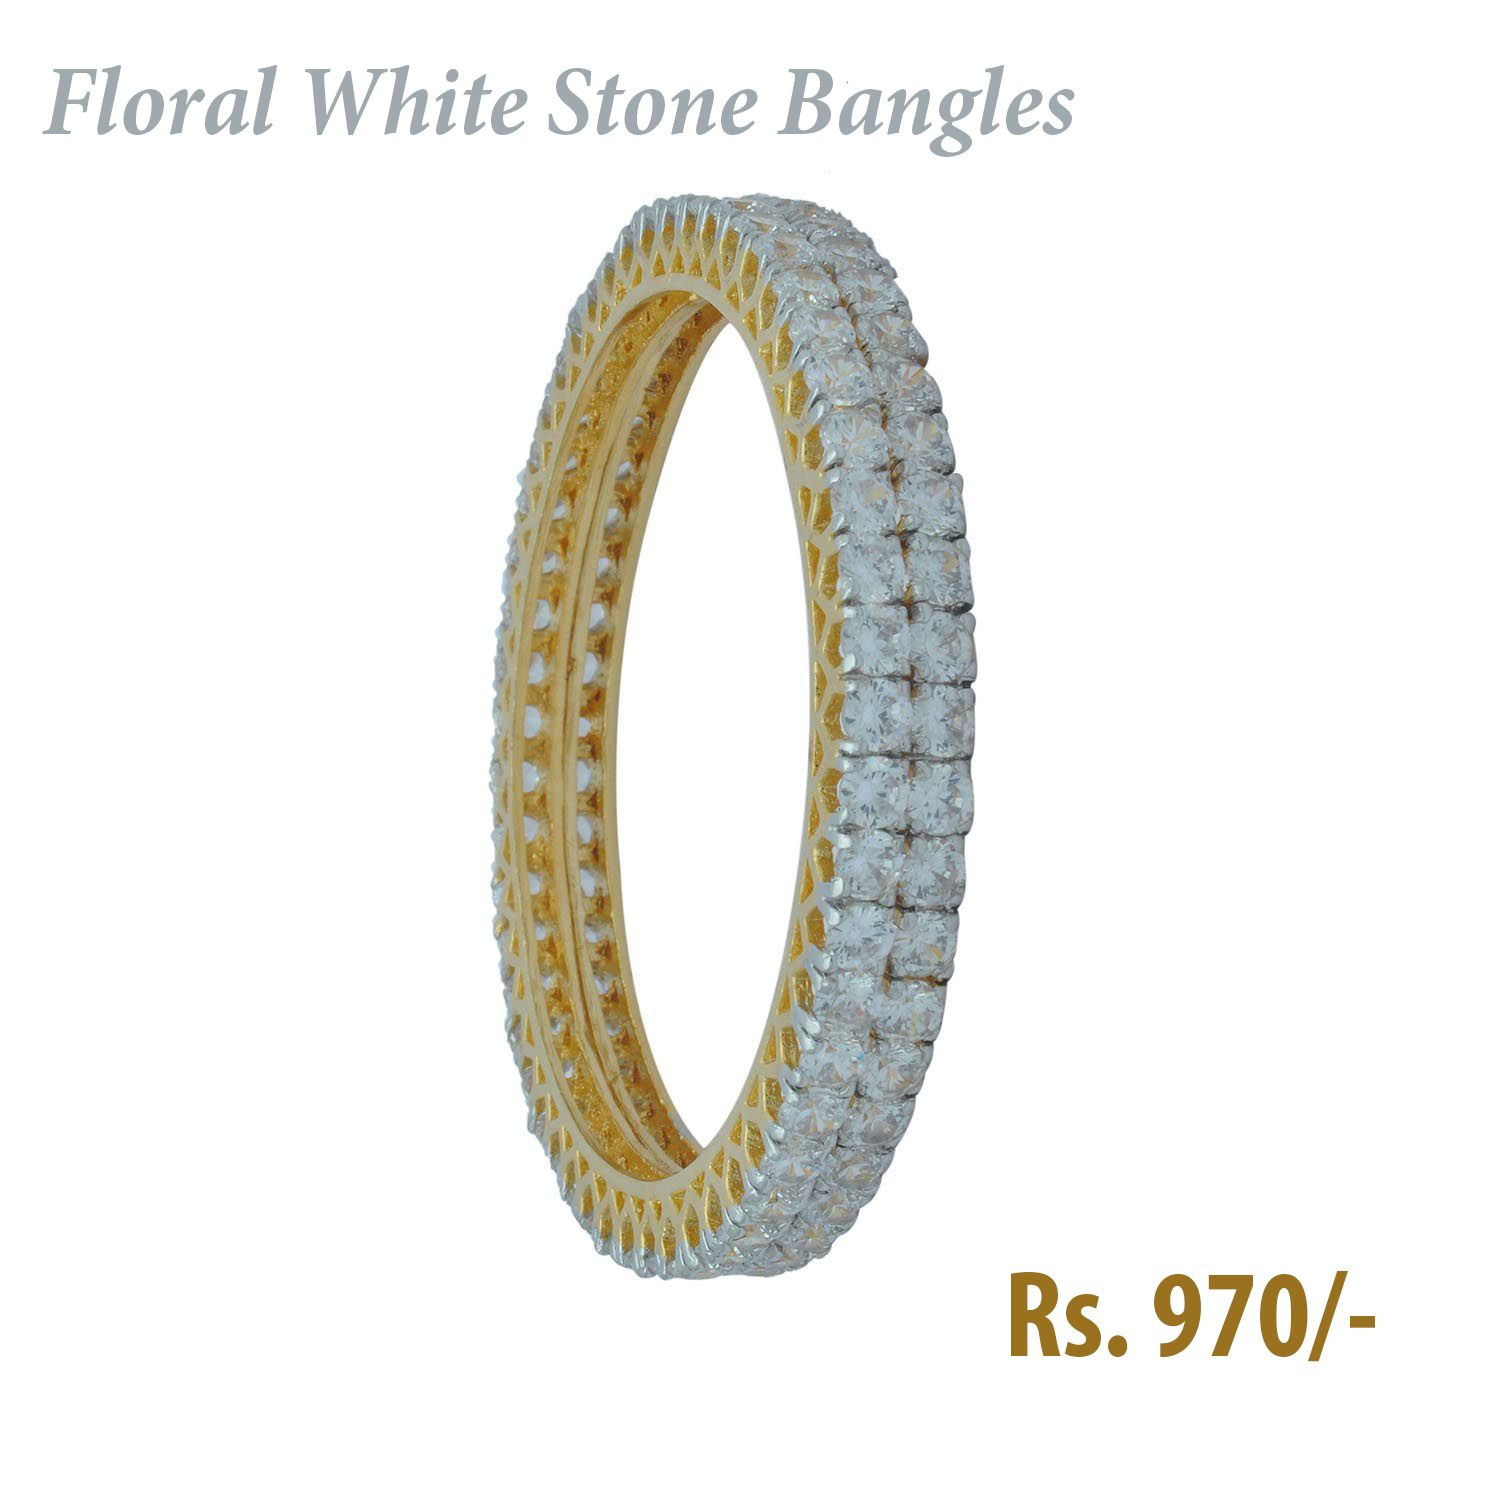 2a82af239c3 How Cute & Affordable Floral White Stone #Bangles of Rs. 970/-. It is  Suitable for #Western Outfitters. #Jewelry #Banglzz Shop it here: